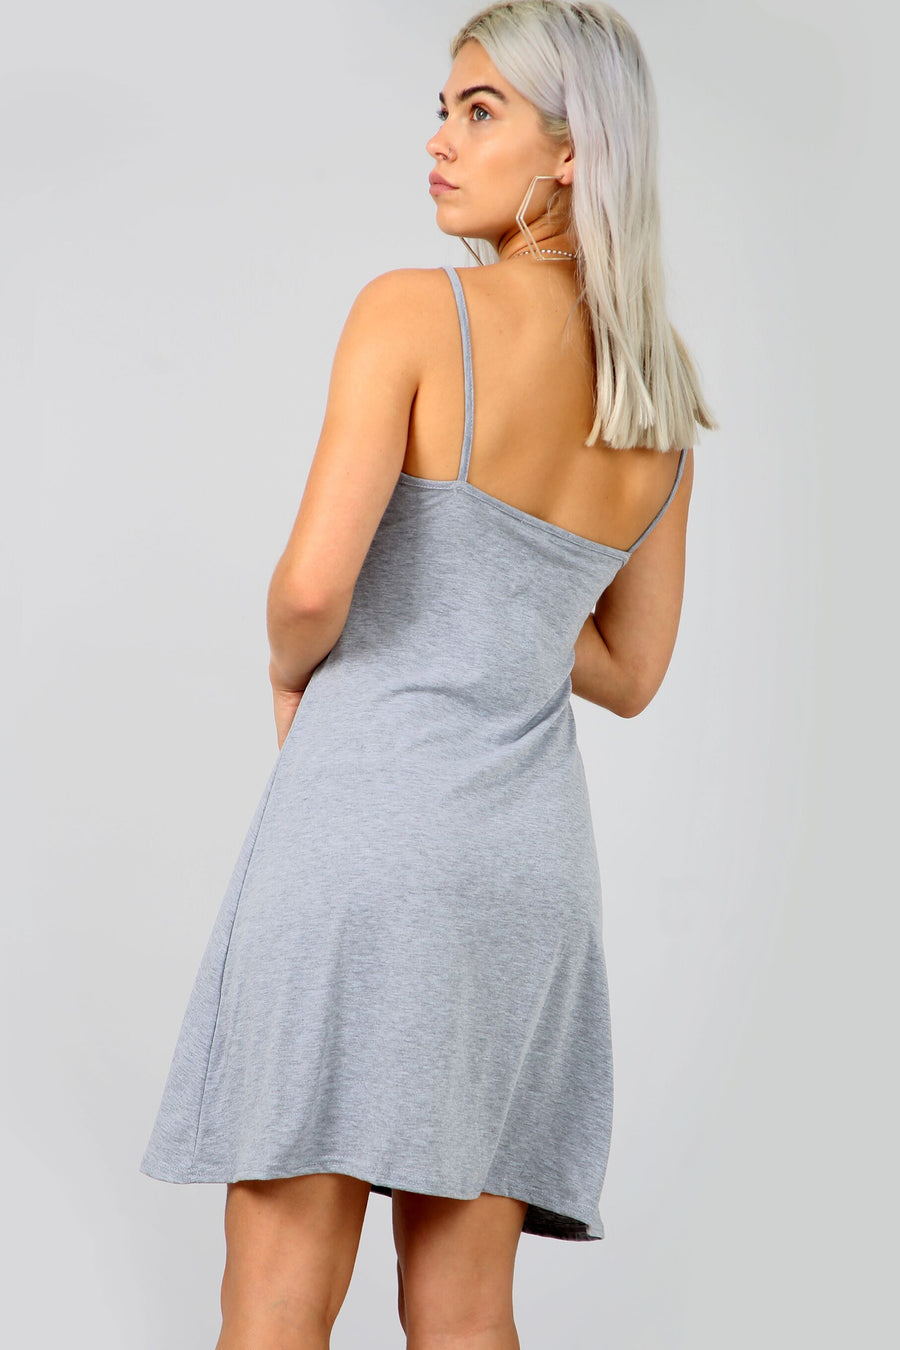 Strappy Basic Jersey Mini Swing Dress in Grey - bejealous-com